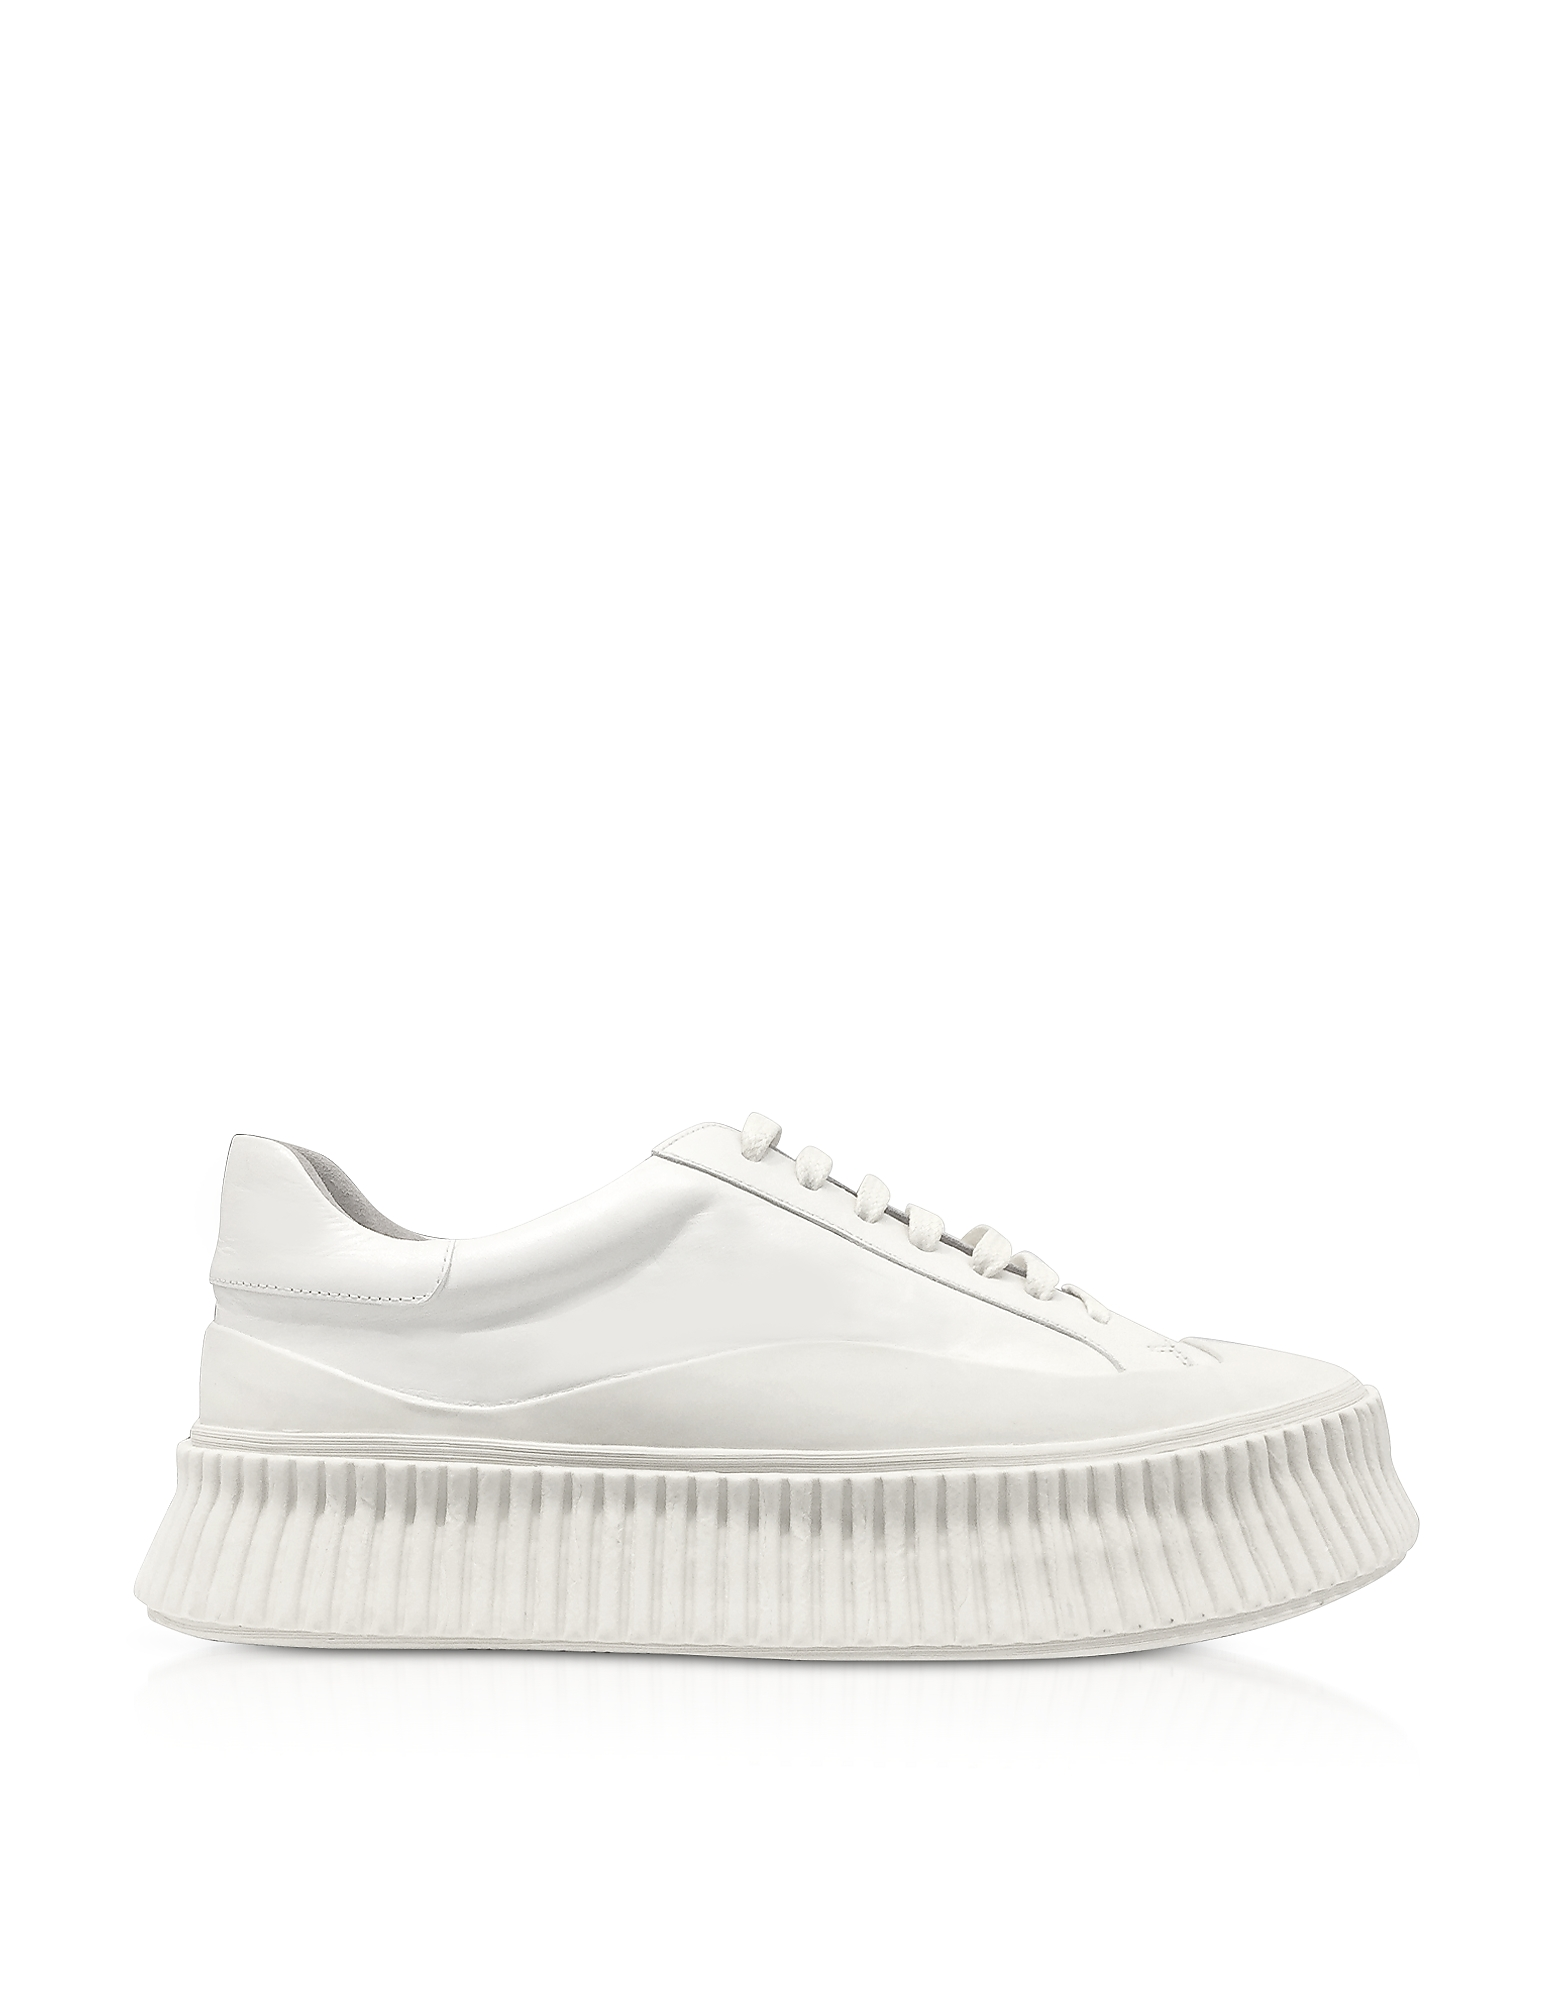 Pure White Leather Flatform Sneakers